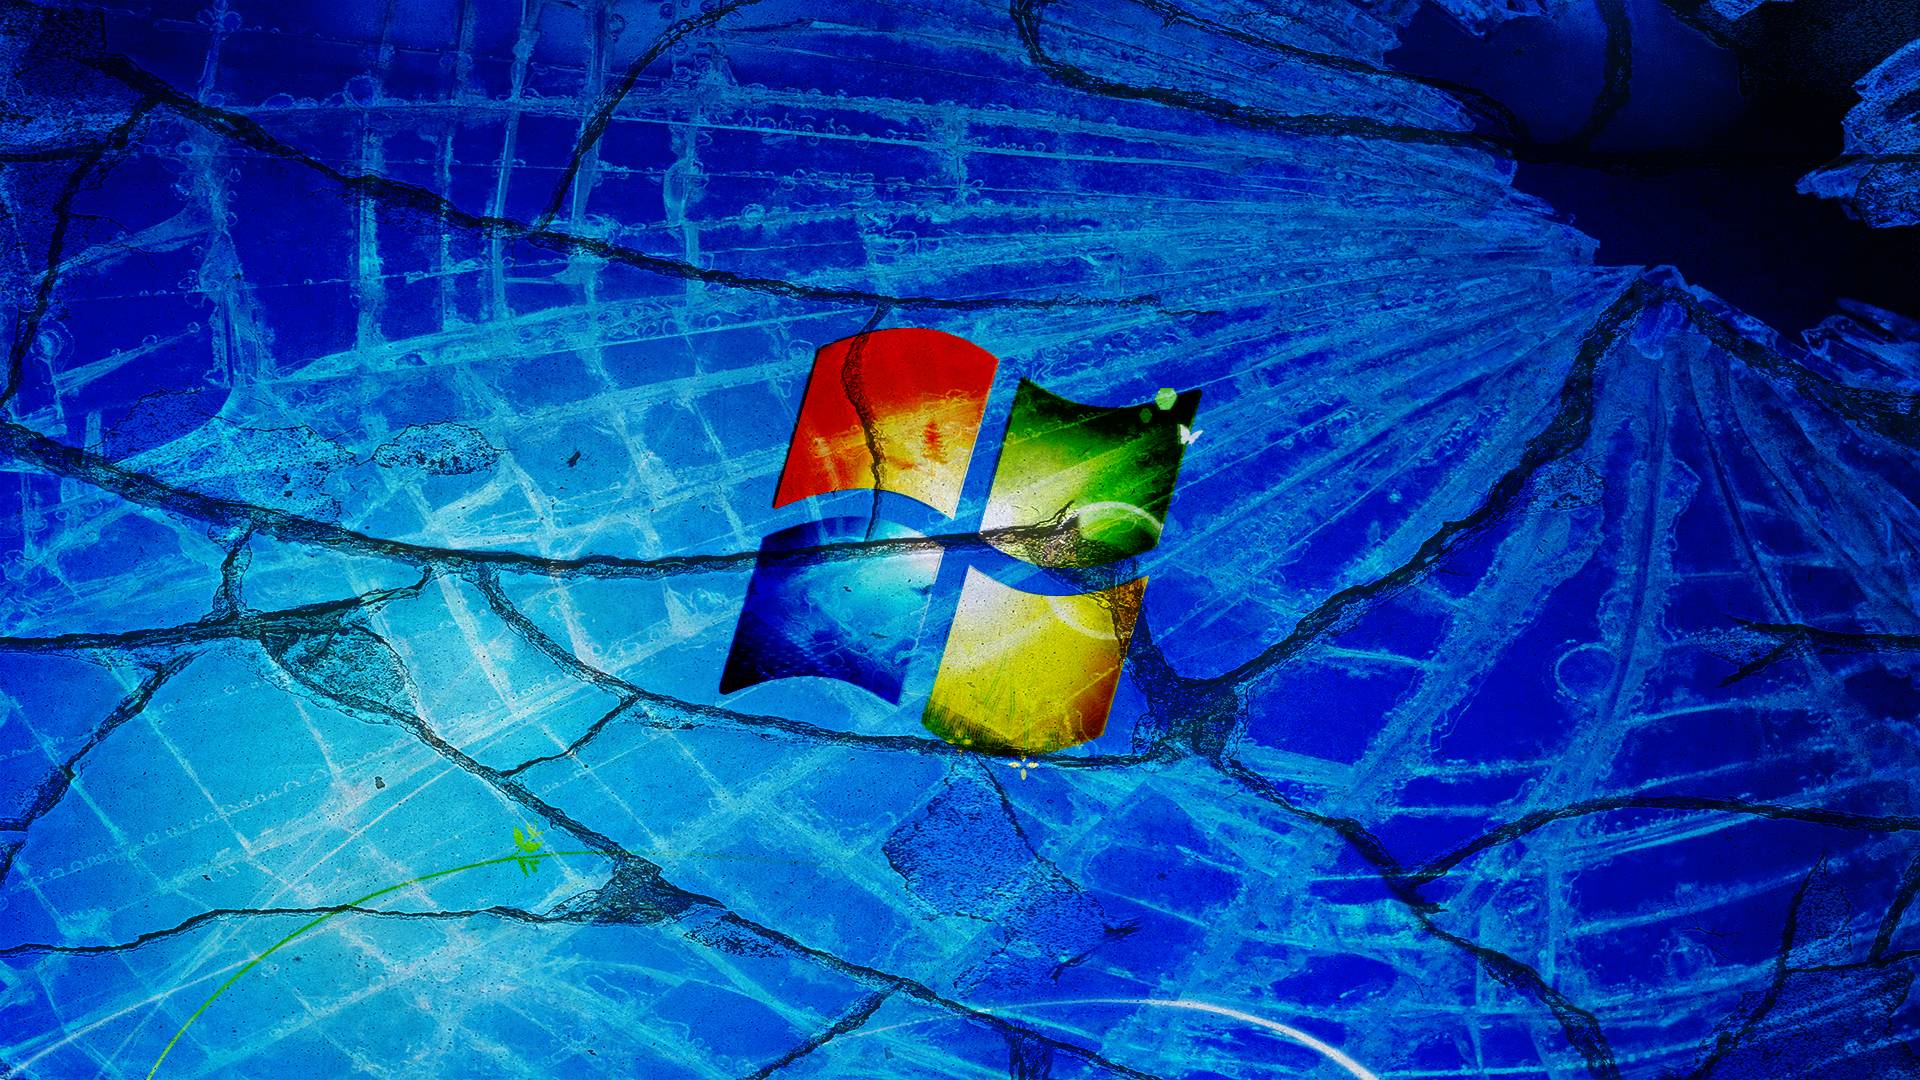 Microsoft's mystery update arouses anger, suspicion among Windows 10 users